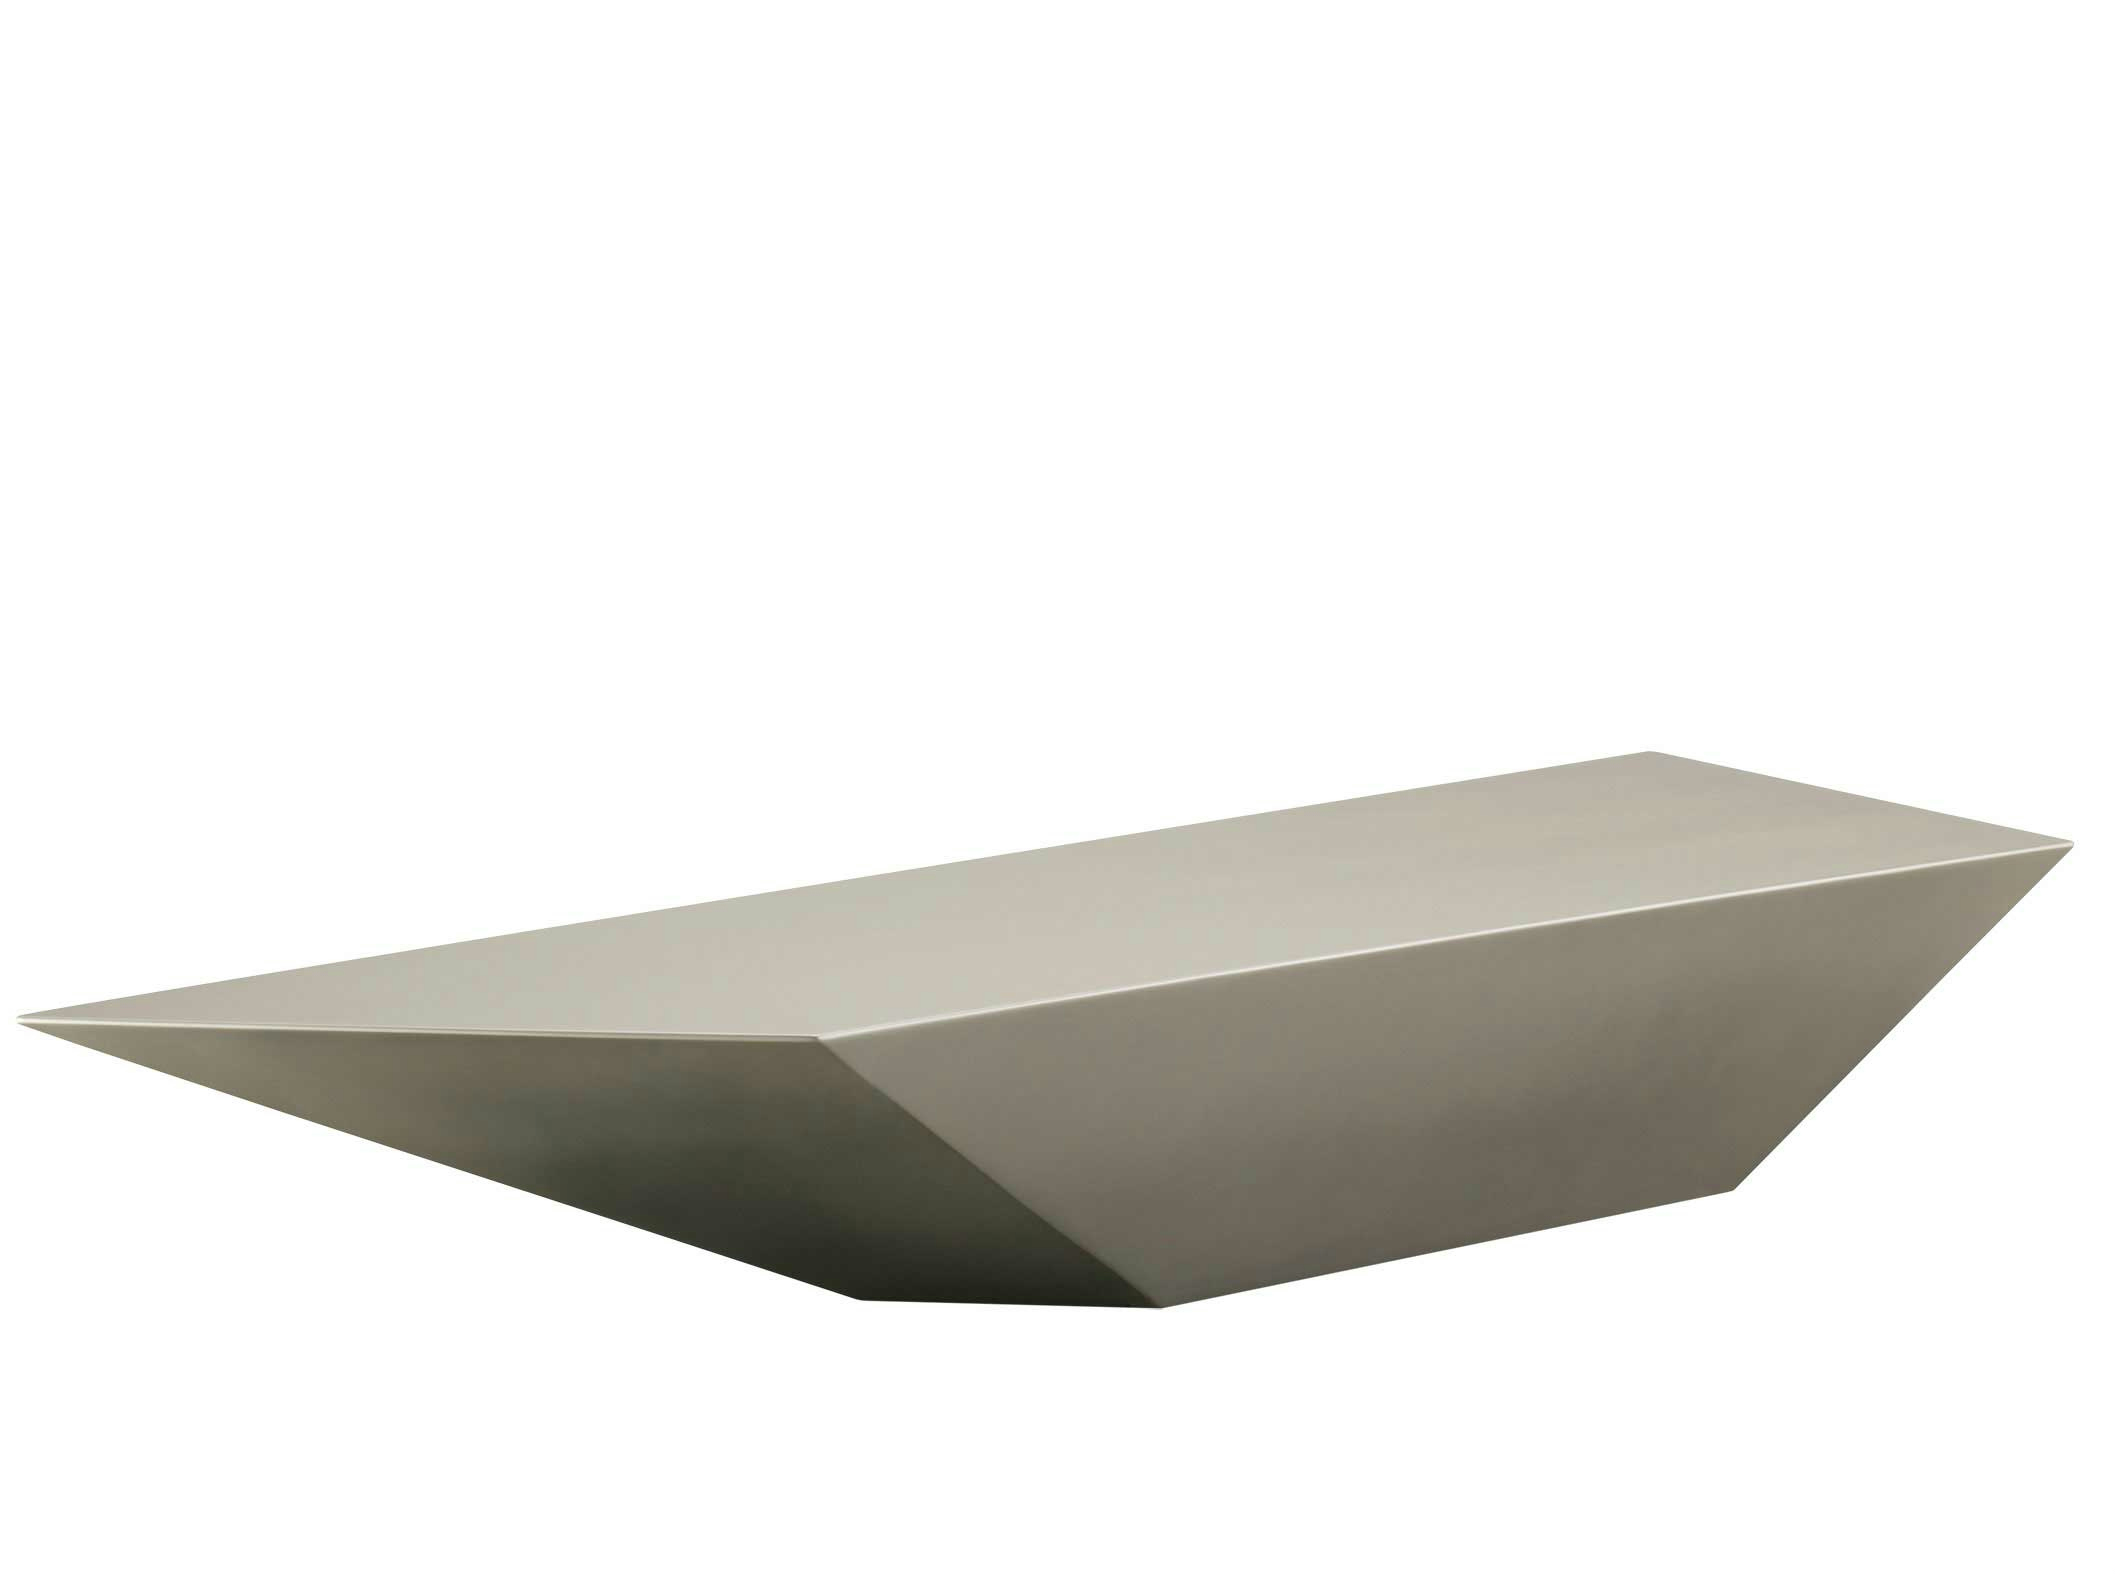 Low Rectangular Coffee Table Furtif Les Contemporains Collection By Roche Bobois Design Daniel